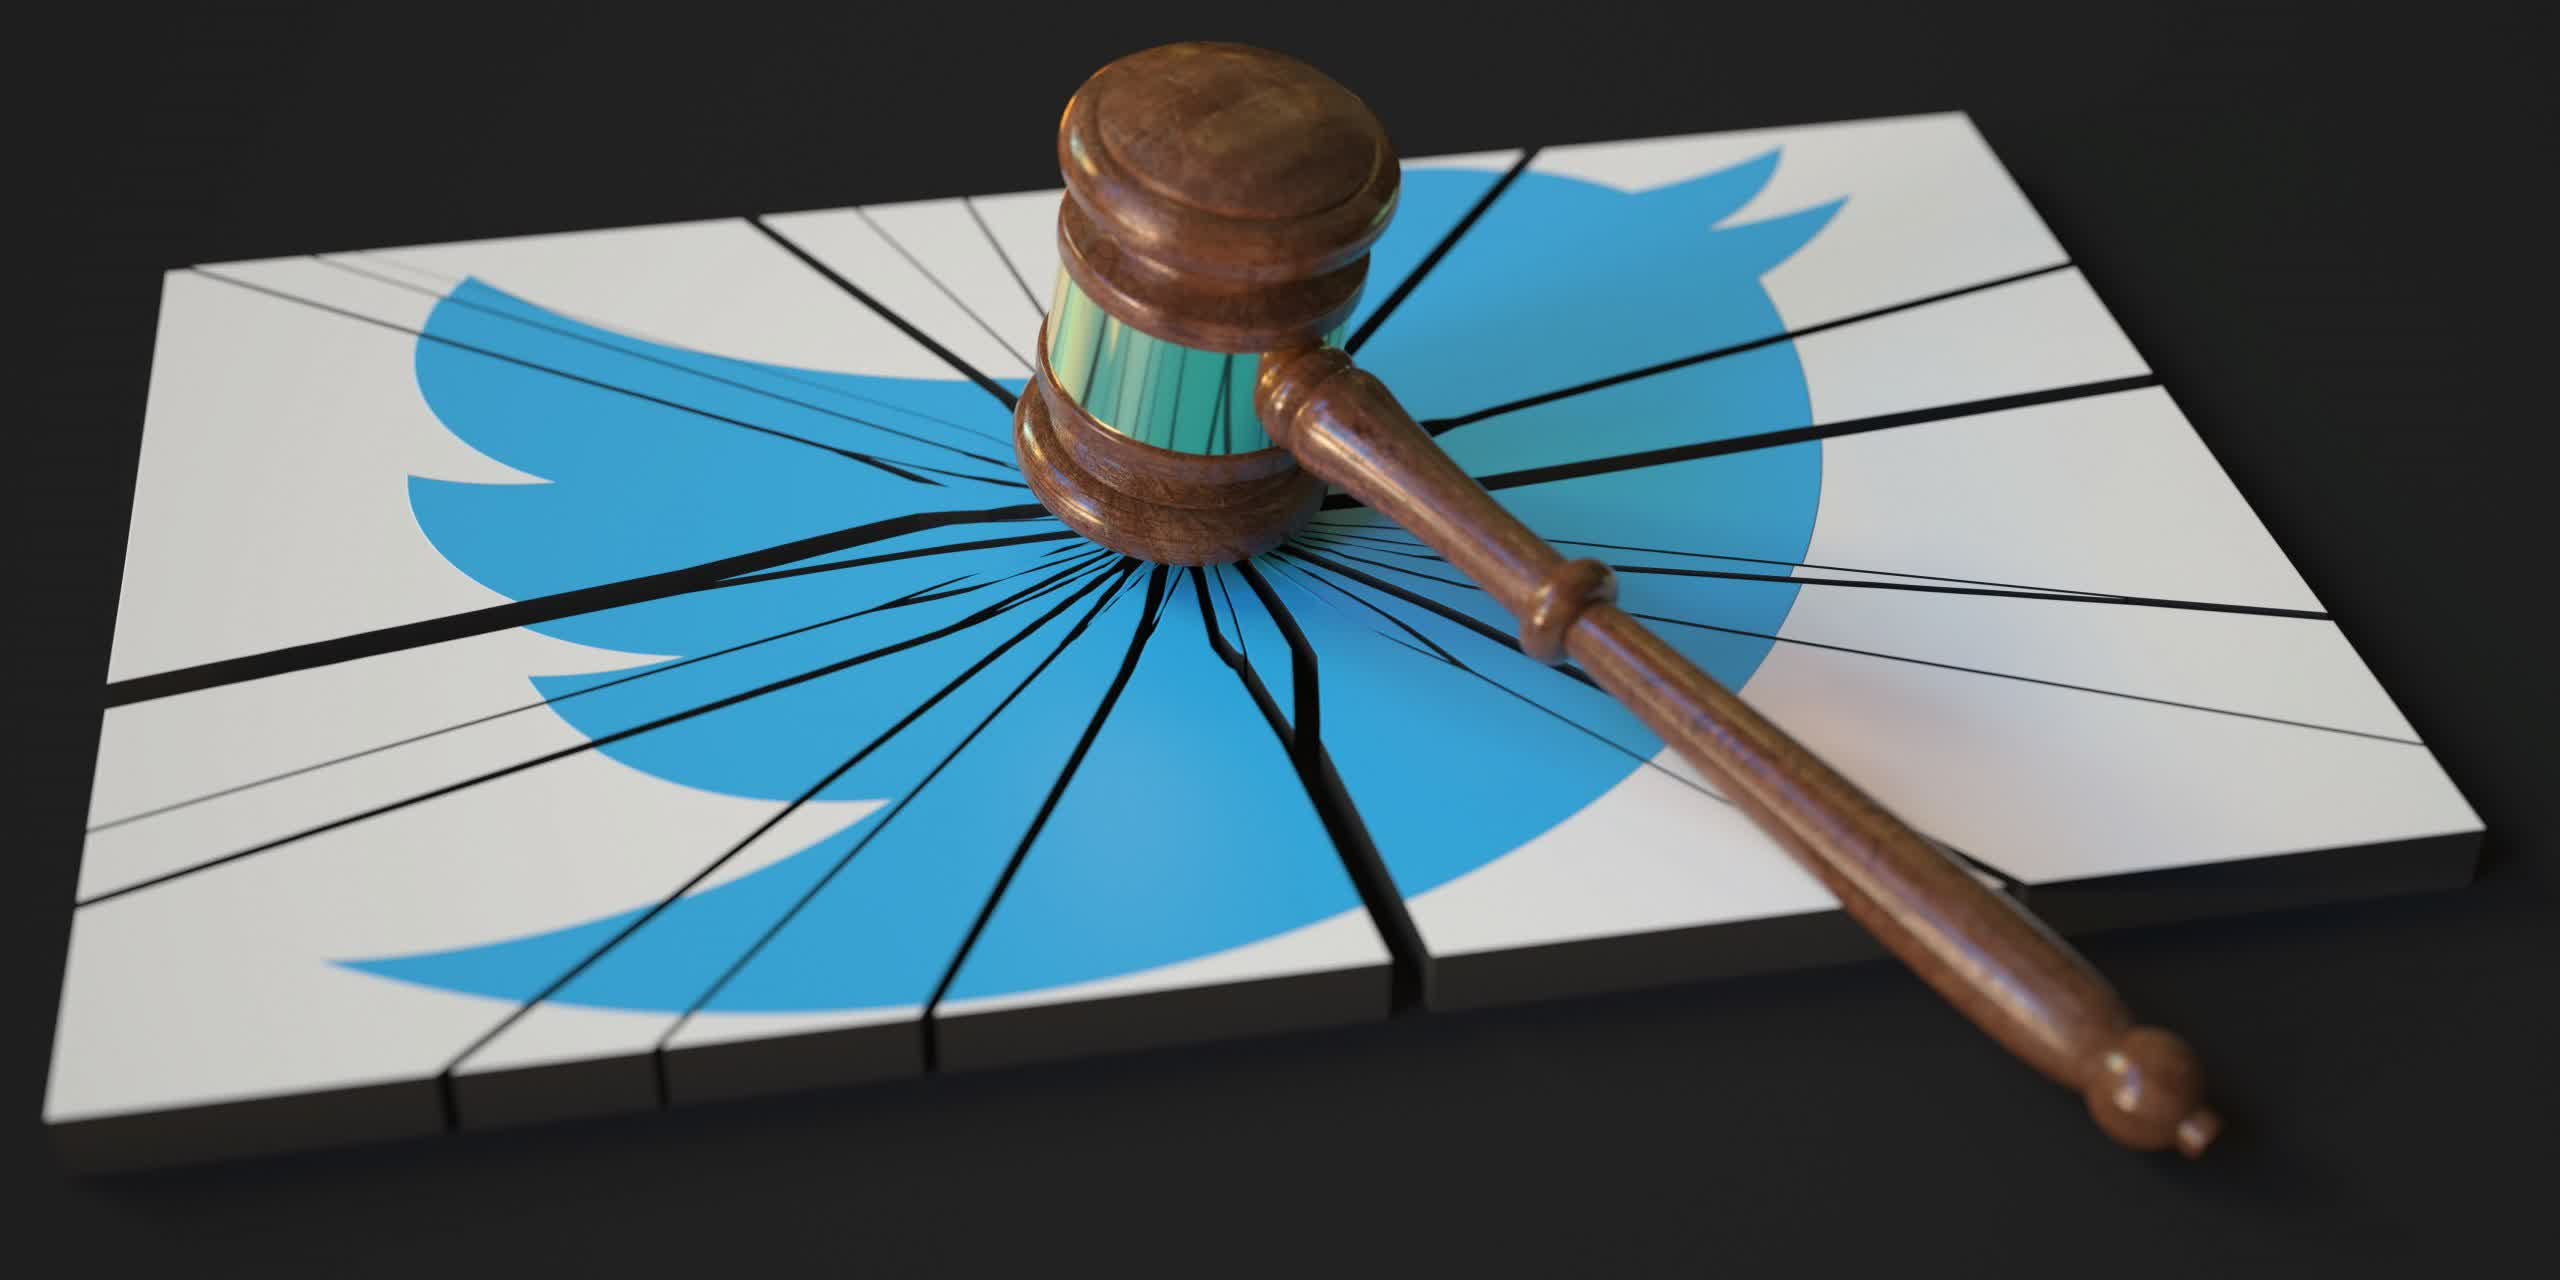 Twitter proposes a $809 million settlement to end a Securities Exchange Act lawsuit